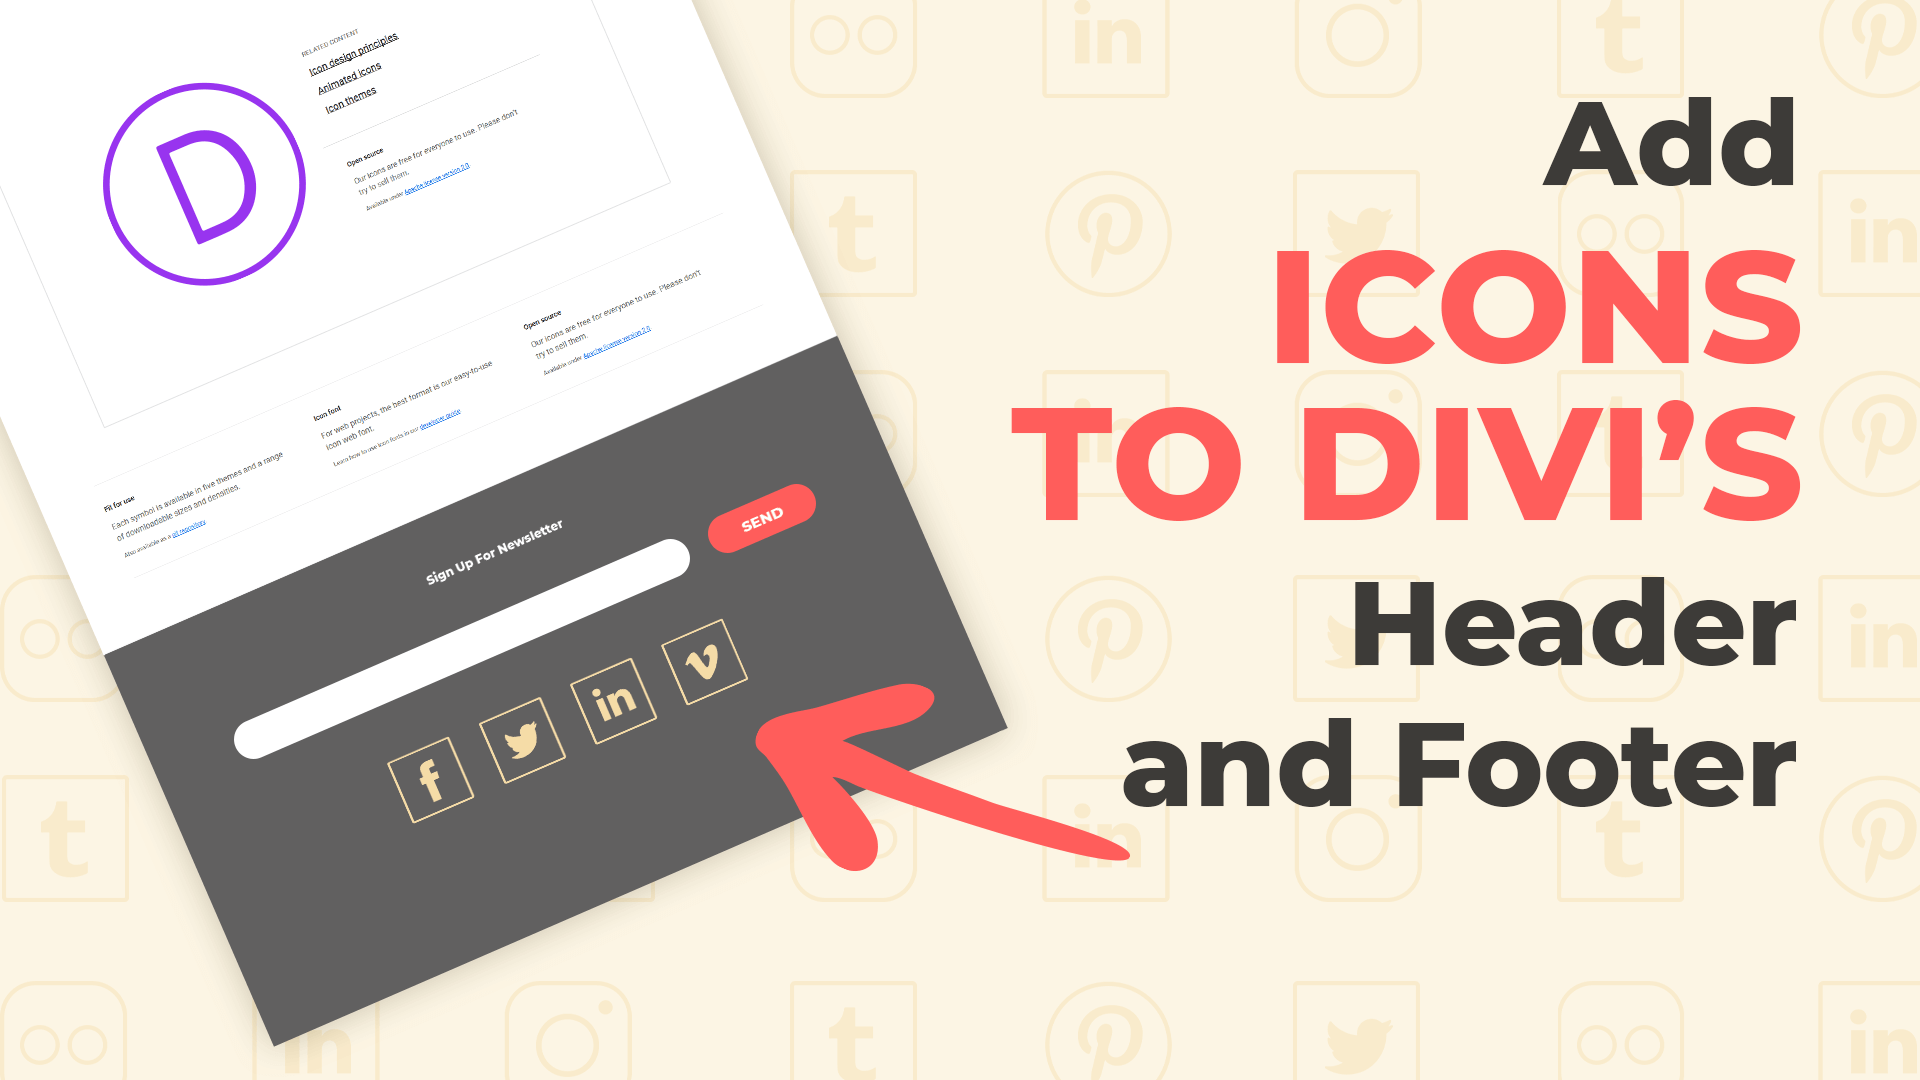 How To Add More Social Media Icons to Divi's Header and Footer